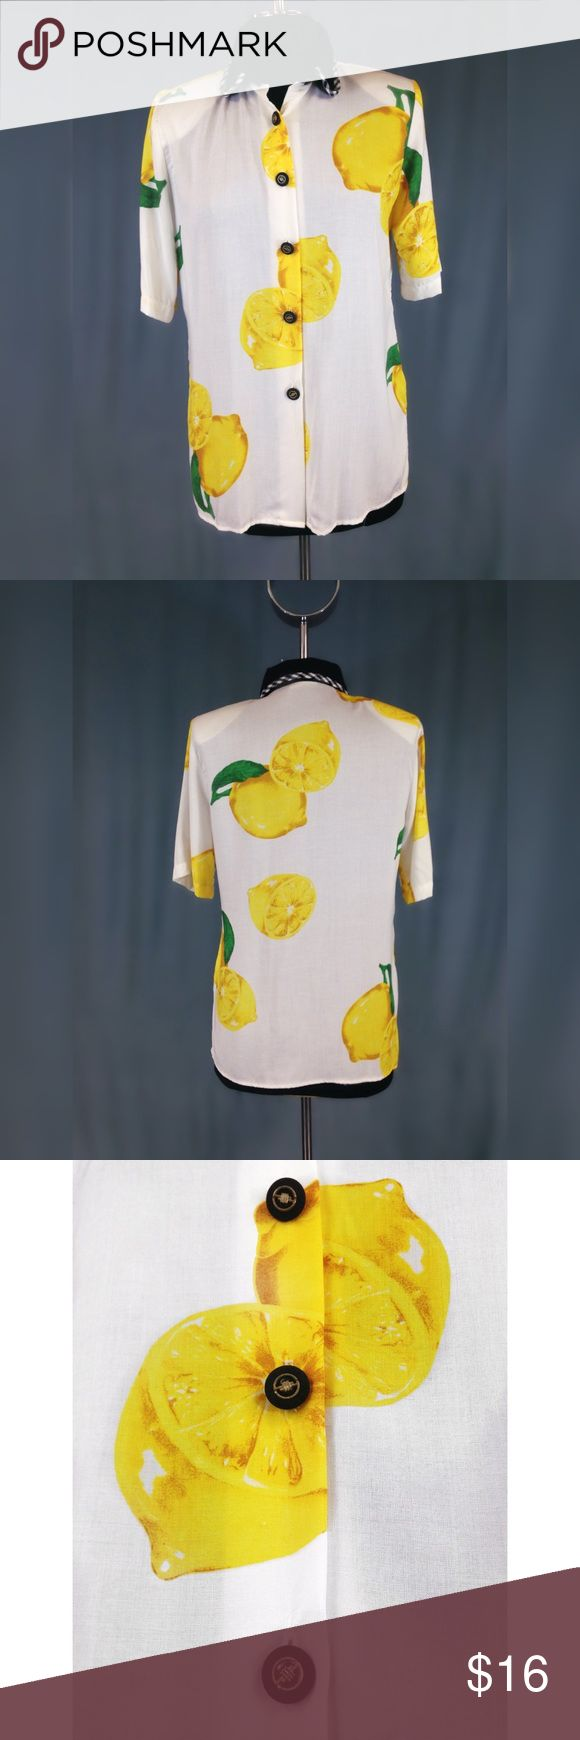 """White Lemon Print Blouse What's more summery than a crisp white blouse with freakin bright yellow lemons on it?!   I'm overly excited about this shirt.  Half-length sleeves and a black collar with gingham trim, black and gold buttons, and LEMONS.  I love """"tacky old lady blouses"""" tucked into tight leather Moto pants, a wide brimmed fedora and a delicate strappy stiletto.    Brand: Kathie Lee Size: M  MEASUREMENTS Length: 26"""" shoulder to hem Bust: 38"""" pit to pit Waist: 36"""" Hem: 40"""" Tops…"""